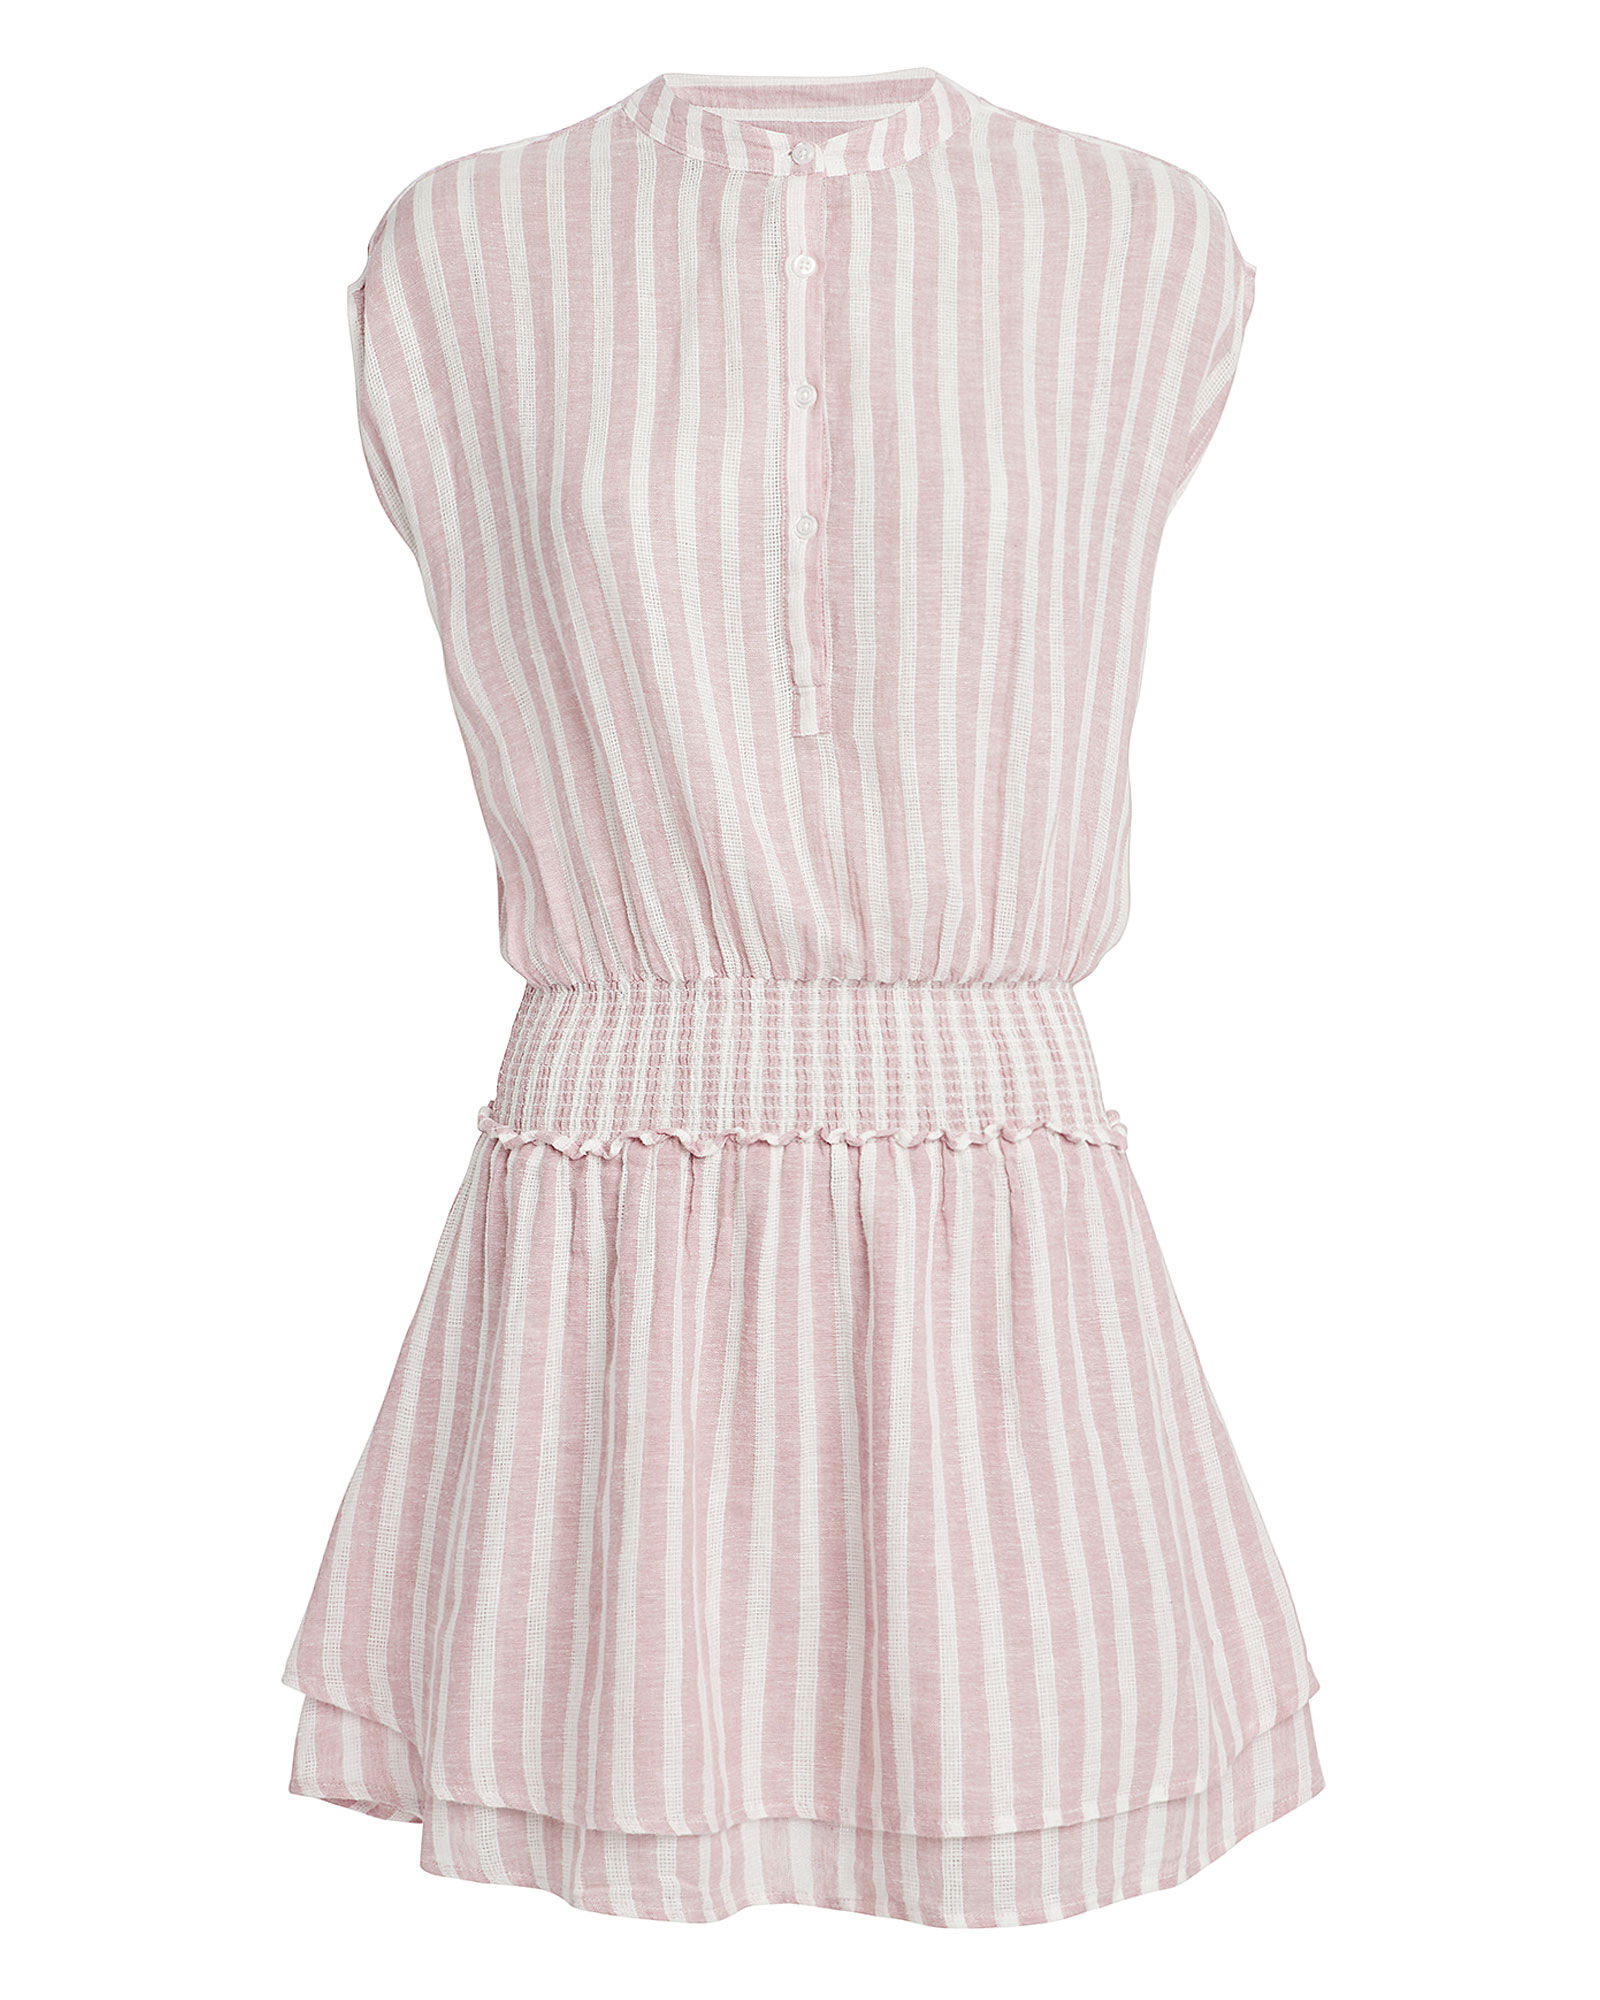 Angelina Linen Dress, MULTI, hi-res